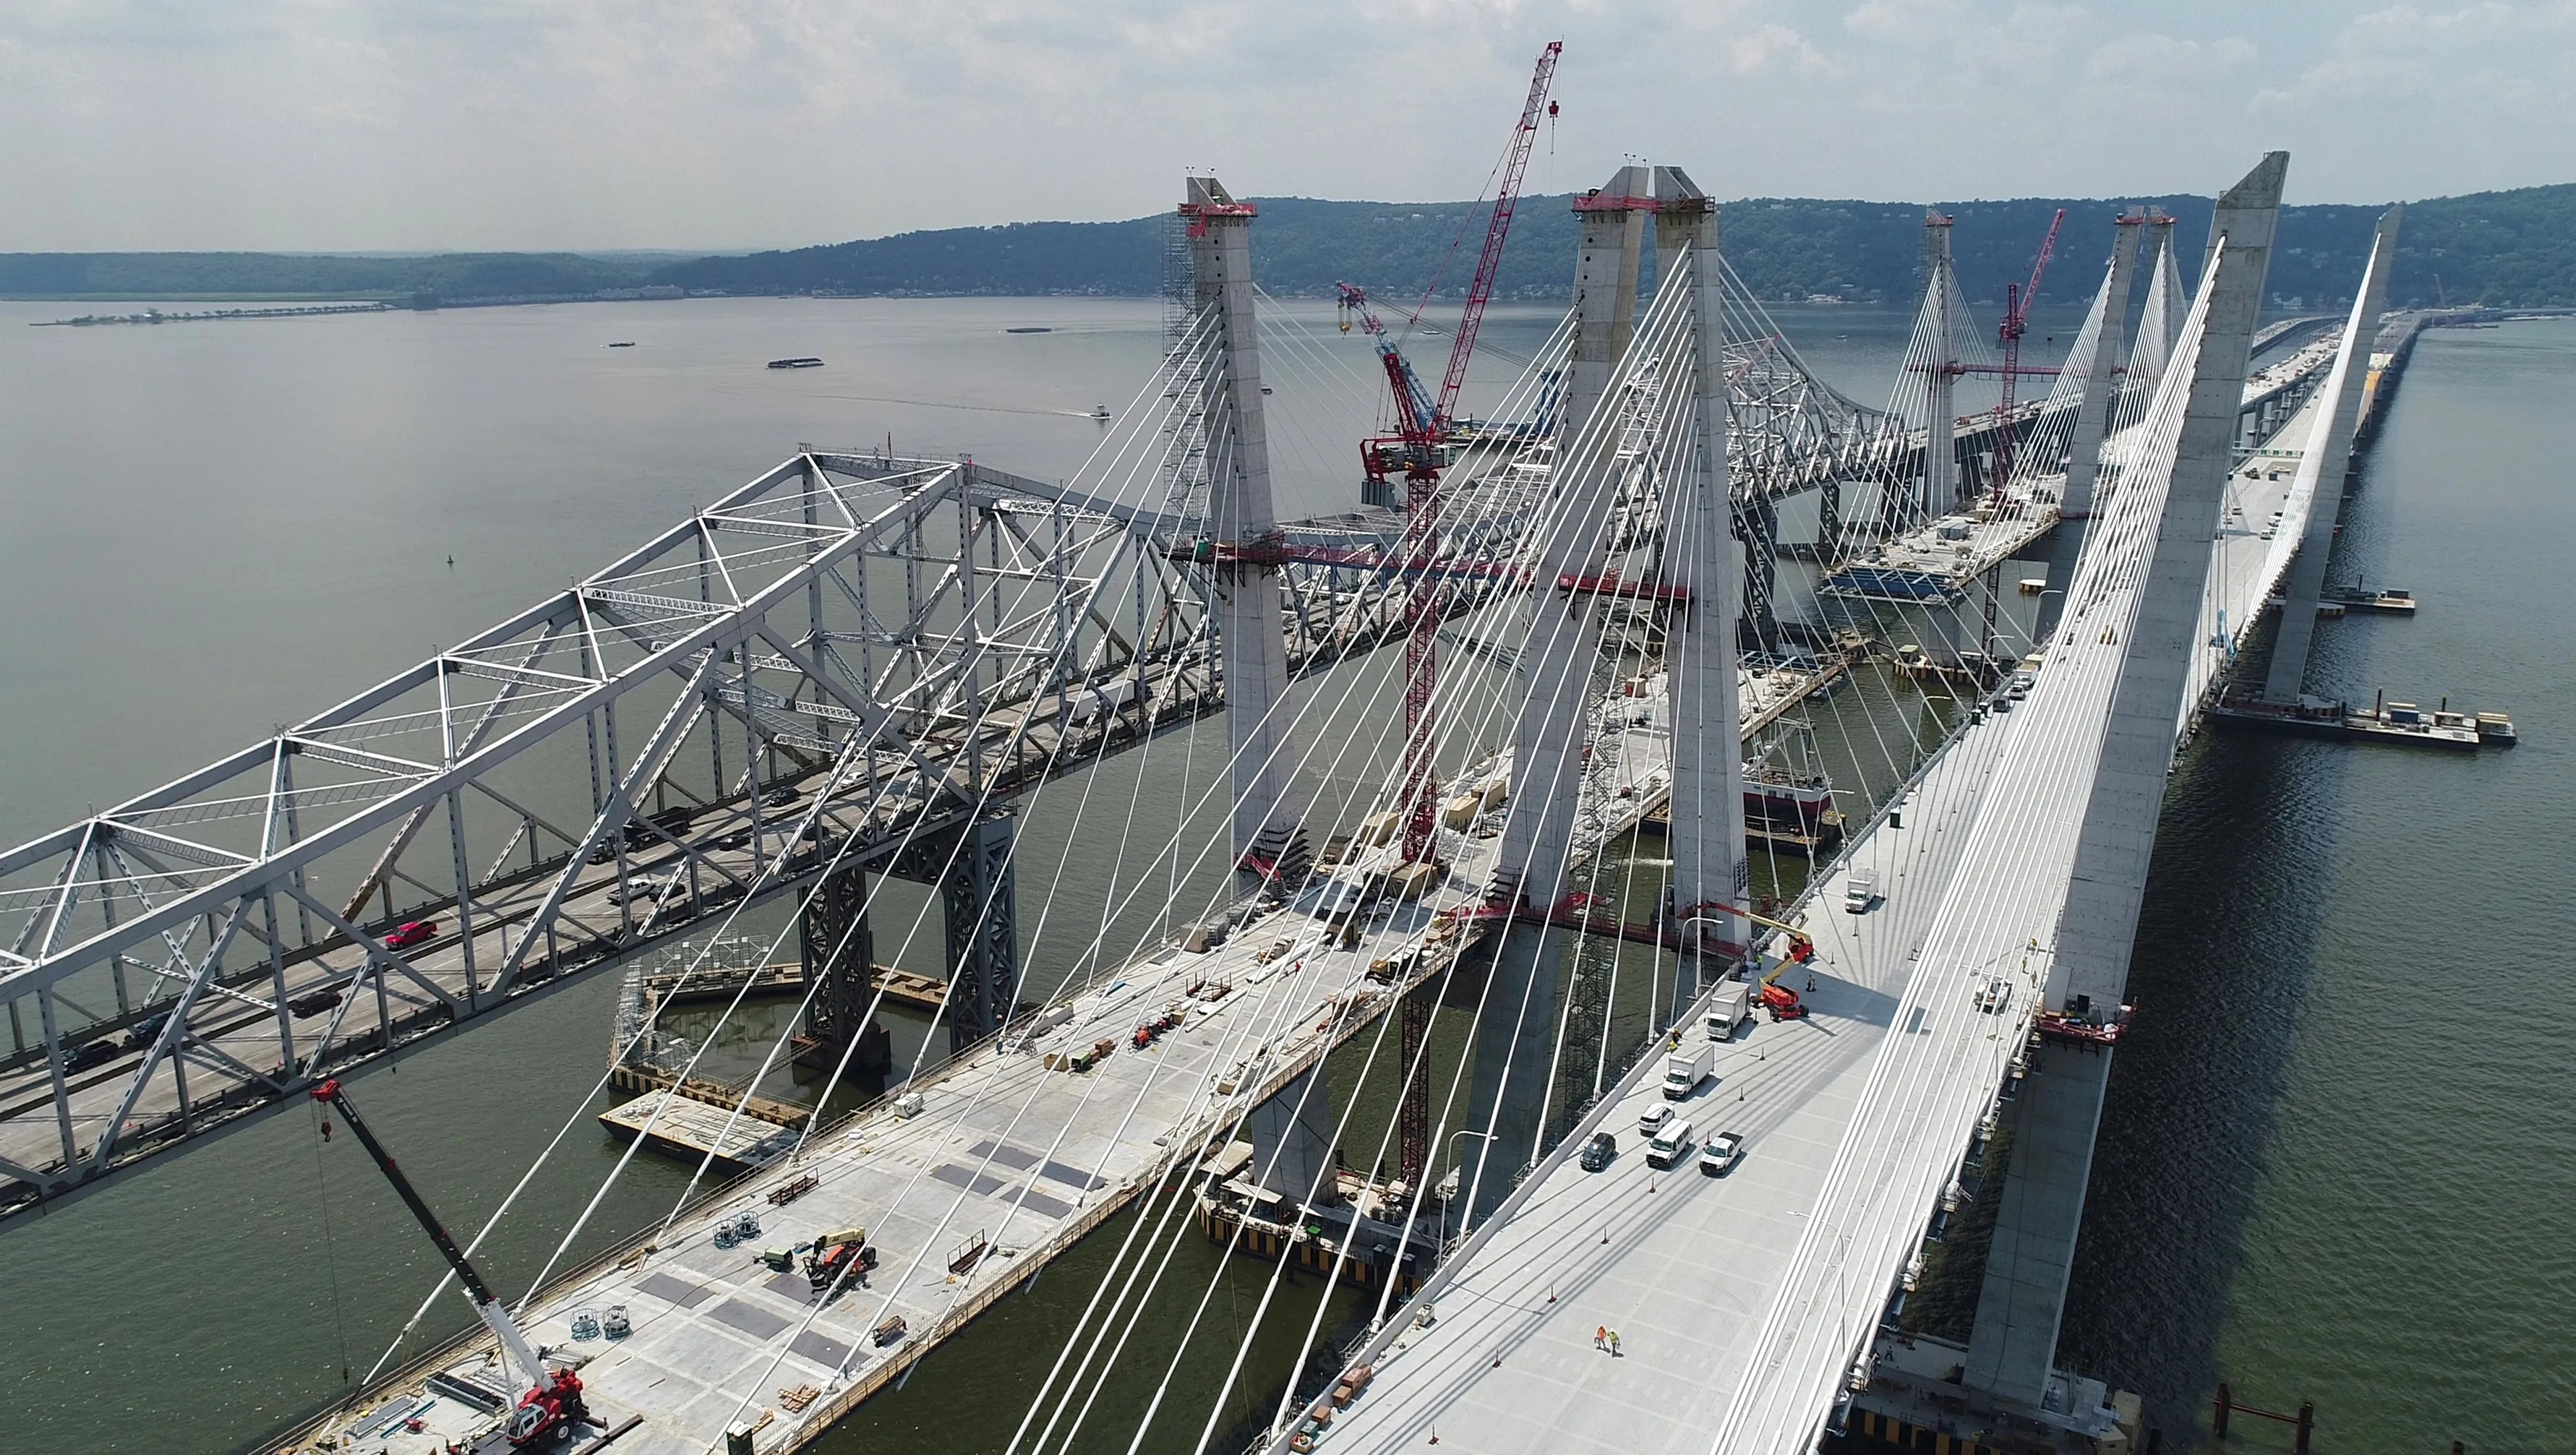 This is the west span of the Tappan Zee Bridge replacement, the Mario Cuomo Bridge in New York City, taken on July 18, 2017.